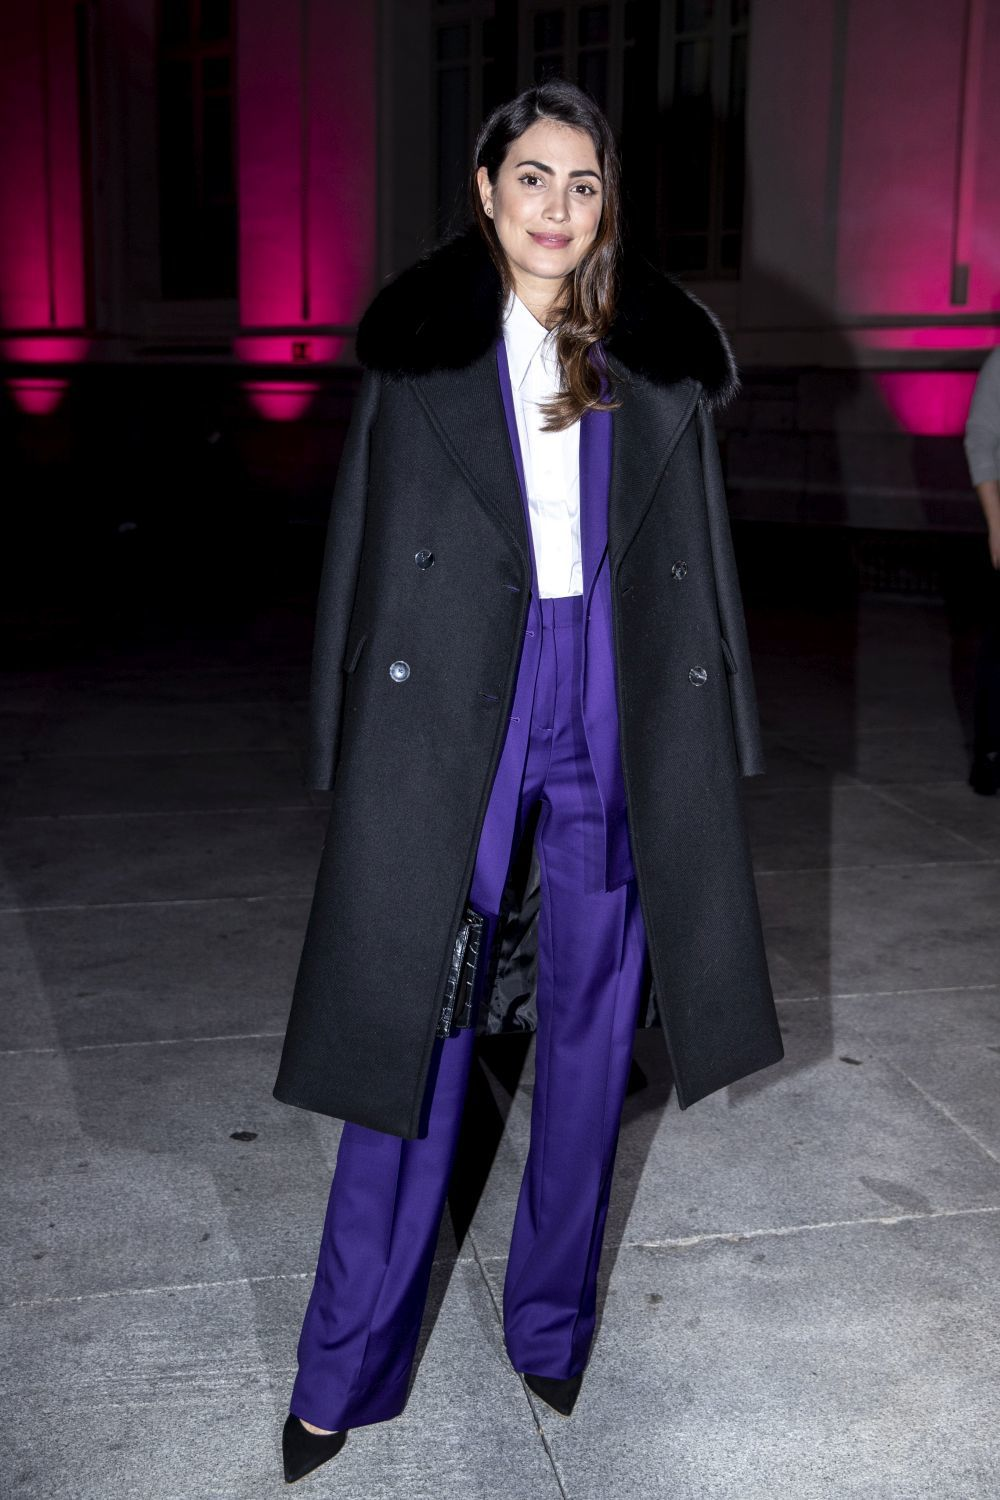 Alessandra de Osma en la Madrid Fashion Week.